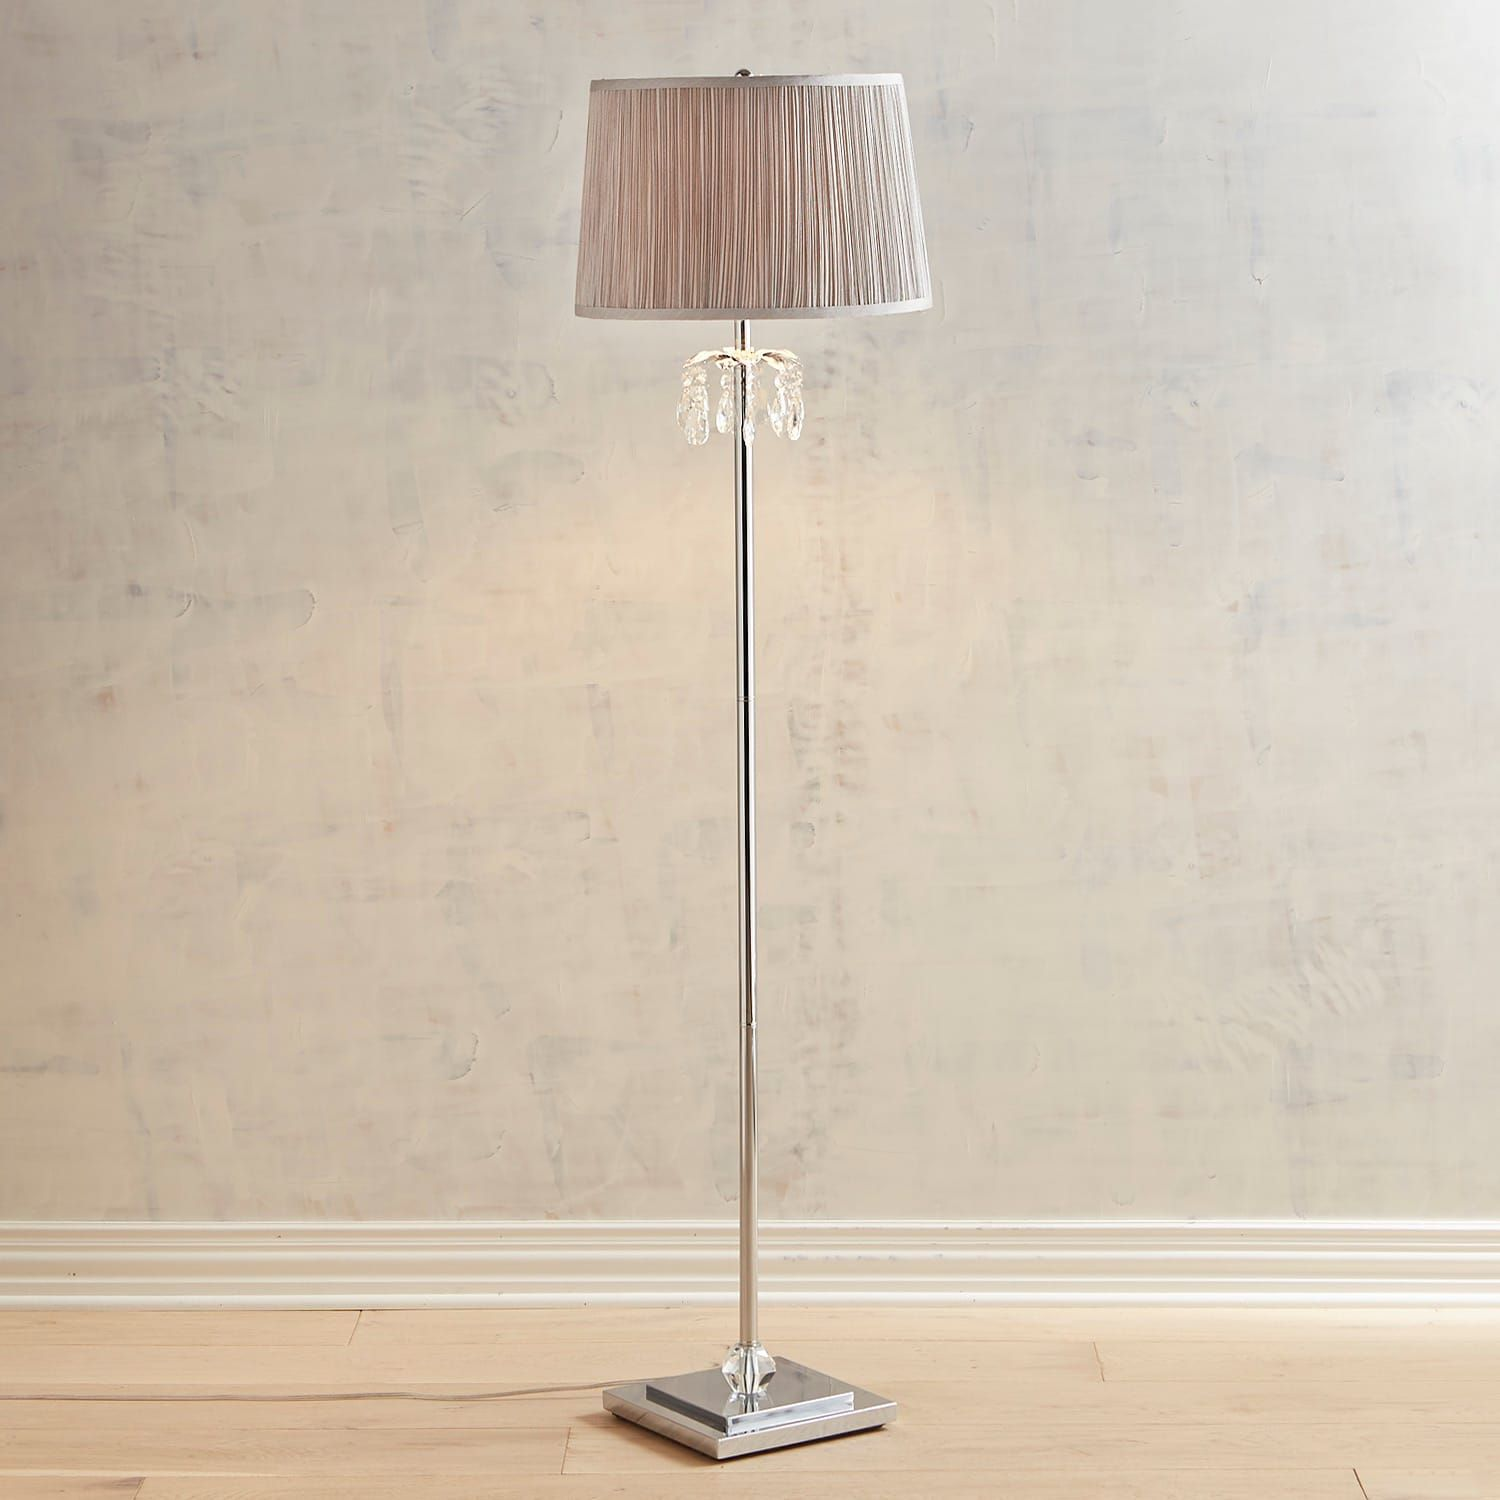 Tina Crystal Bead Gray Floor Lamp Floor Lamp Contemporary Floor